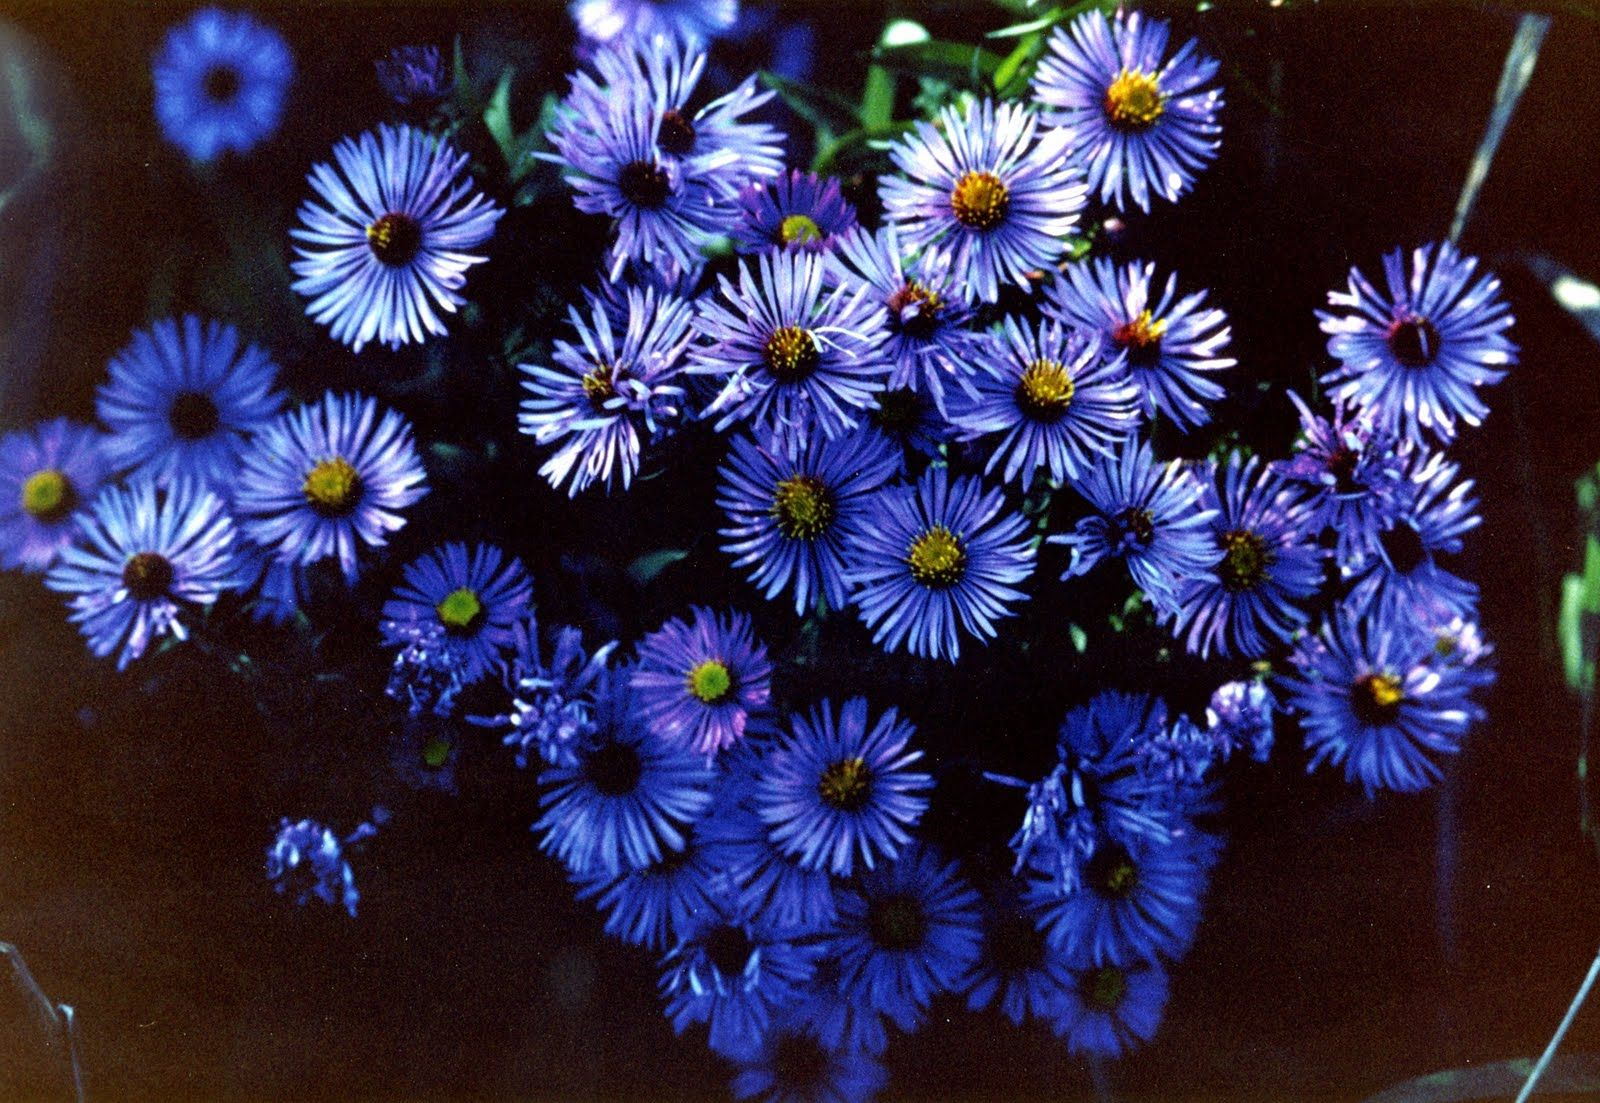 Blue Aster Flower The Flower Of September September Pinterest